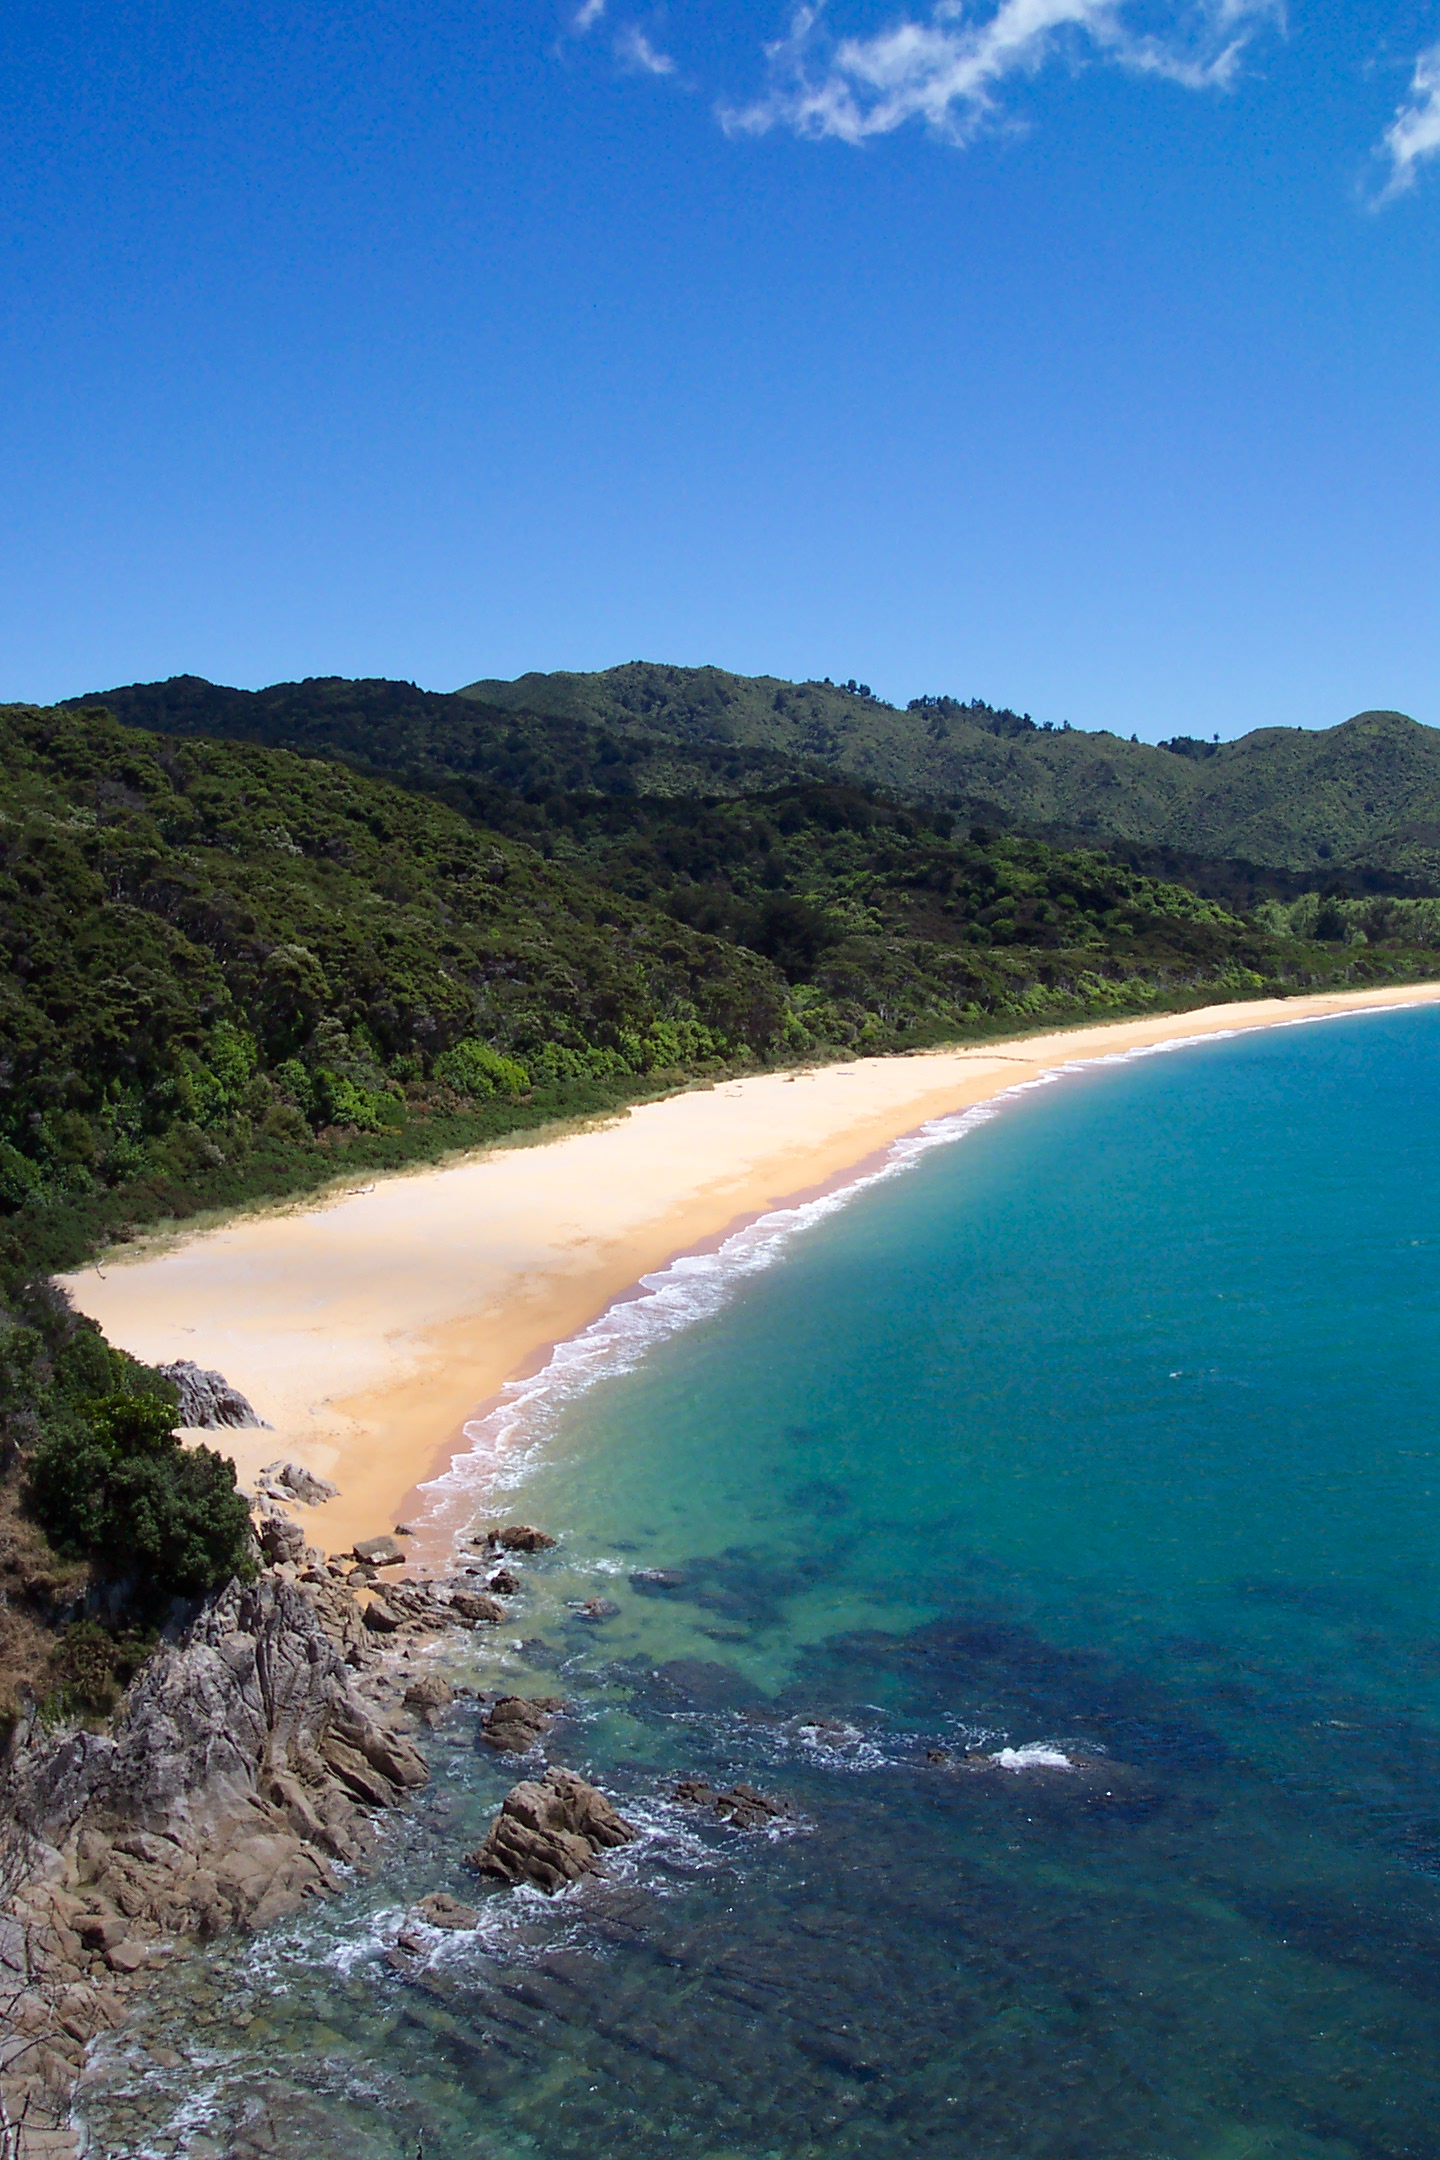 Photo showing clear blue water, a golden sanded beach and forested hills